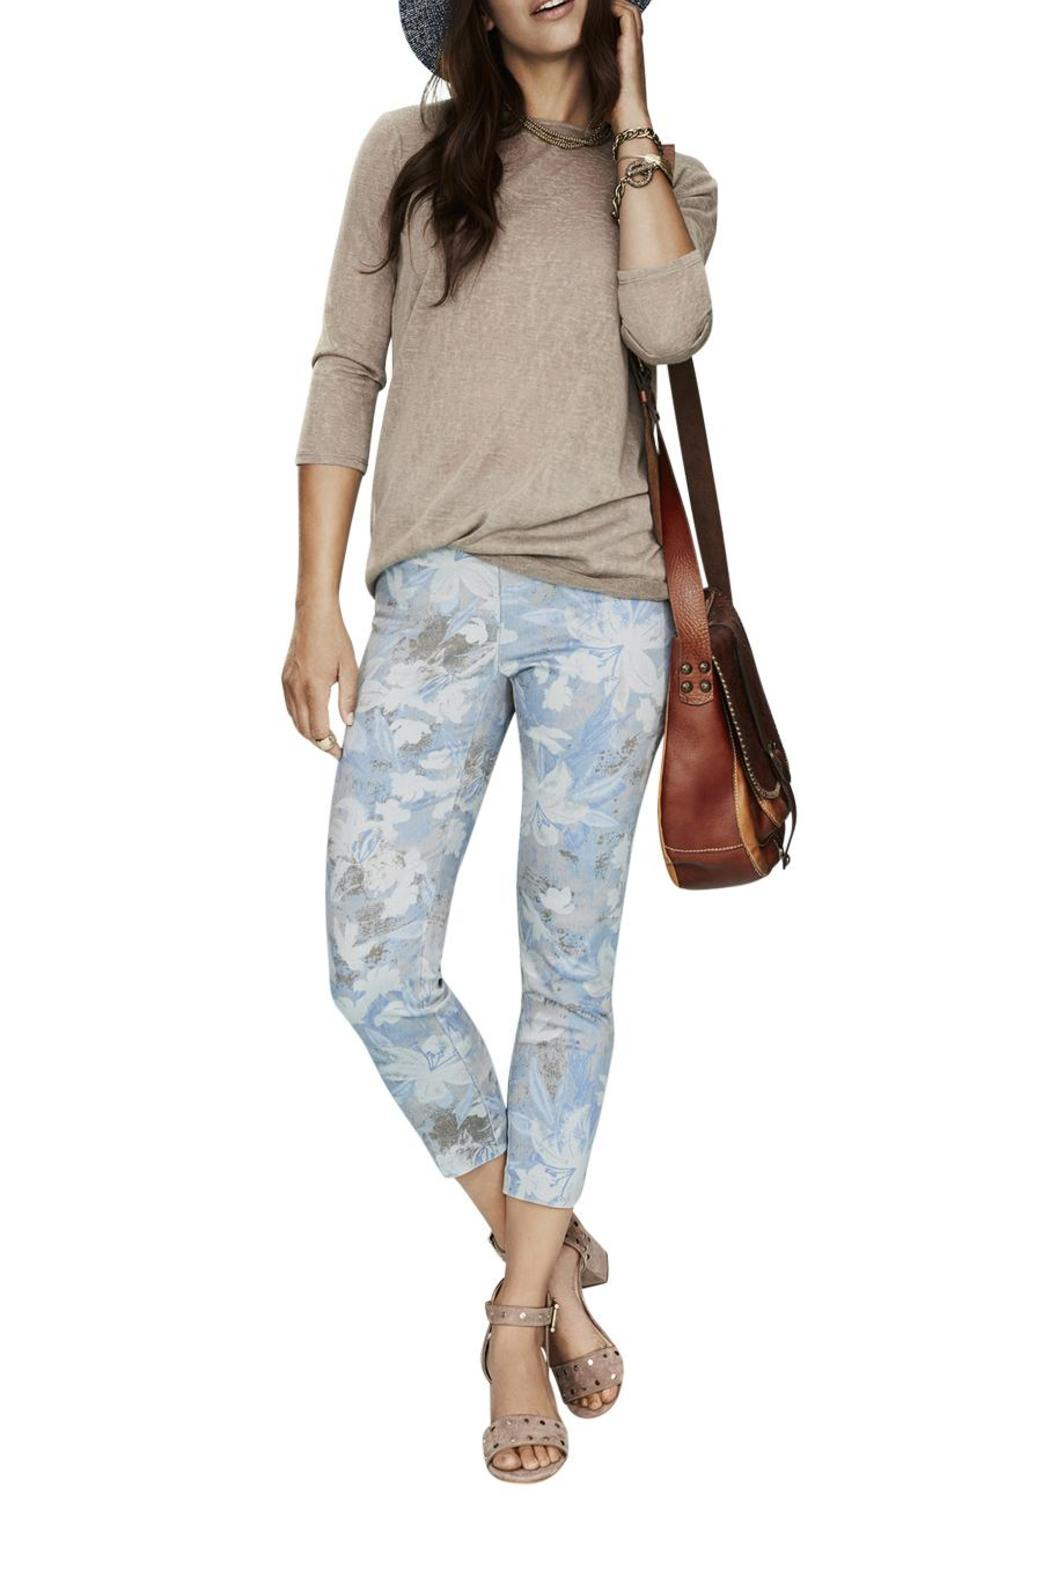 lisette L Woven Printed Pant - Main Image